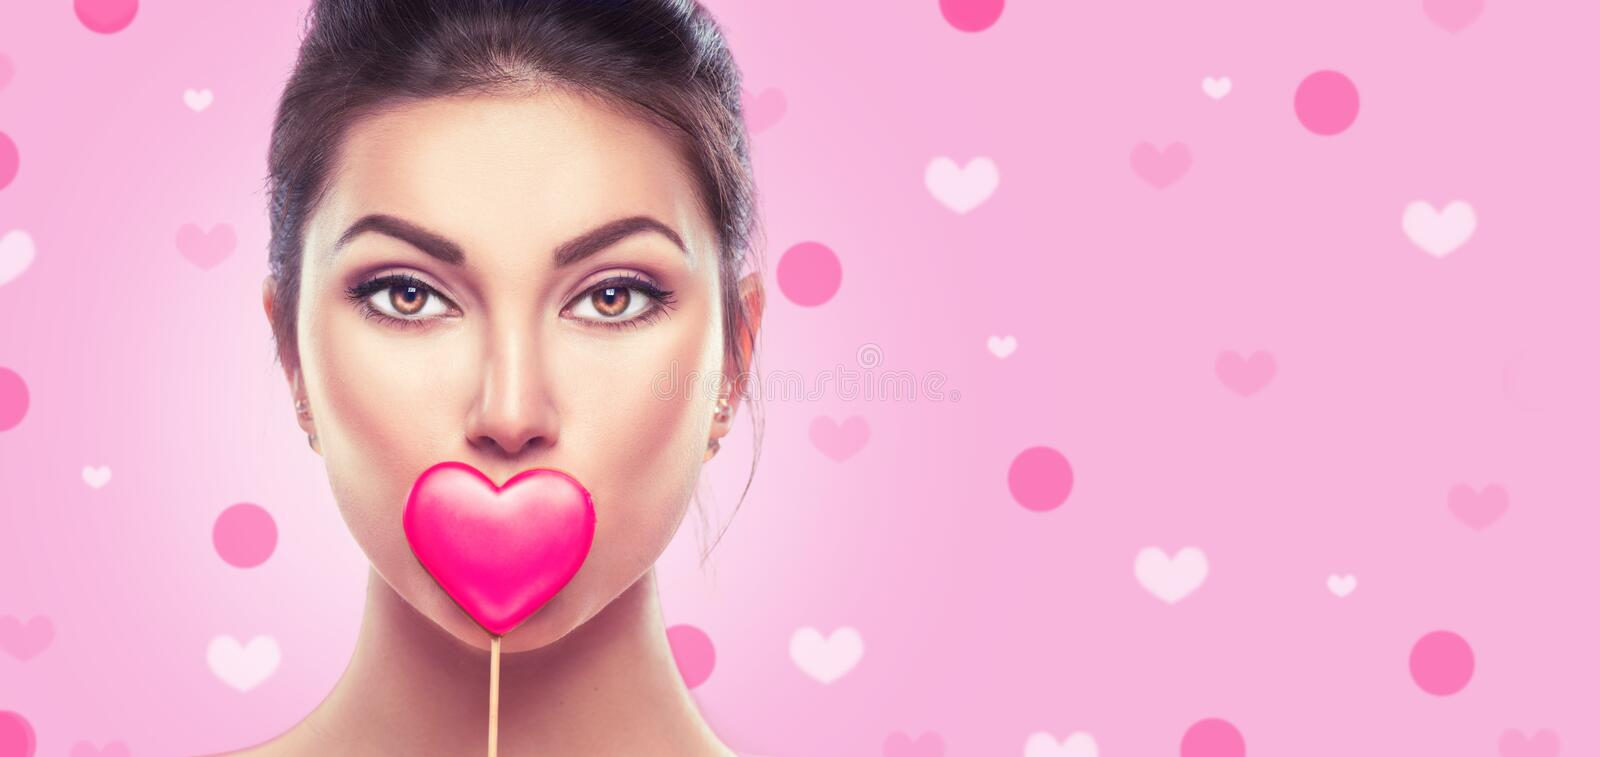 Valentine`s Day. Beauty young fashion model girl with Valentine heart shaped cookie over pink royalty free stock photography